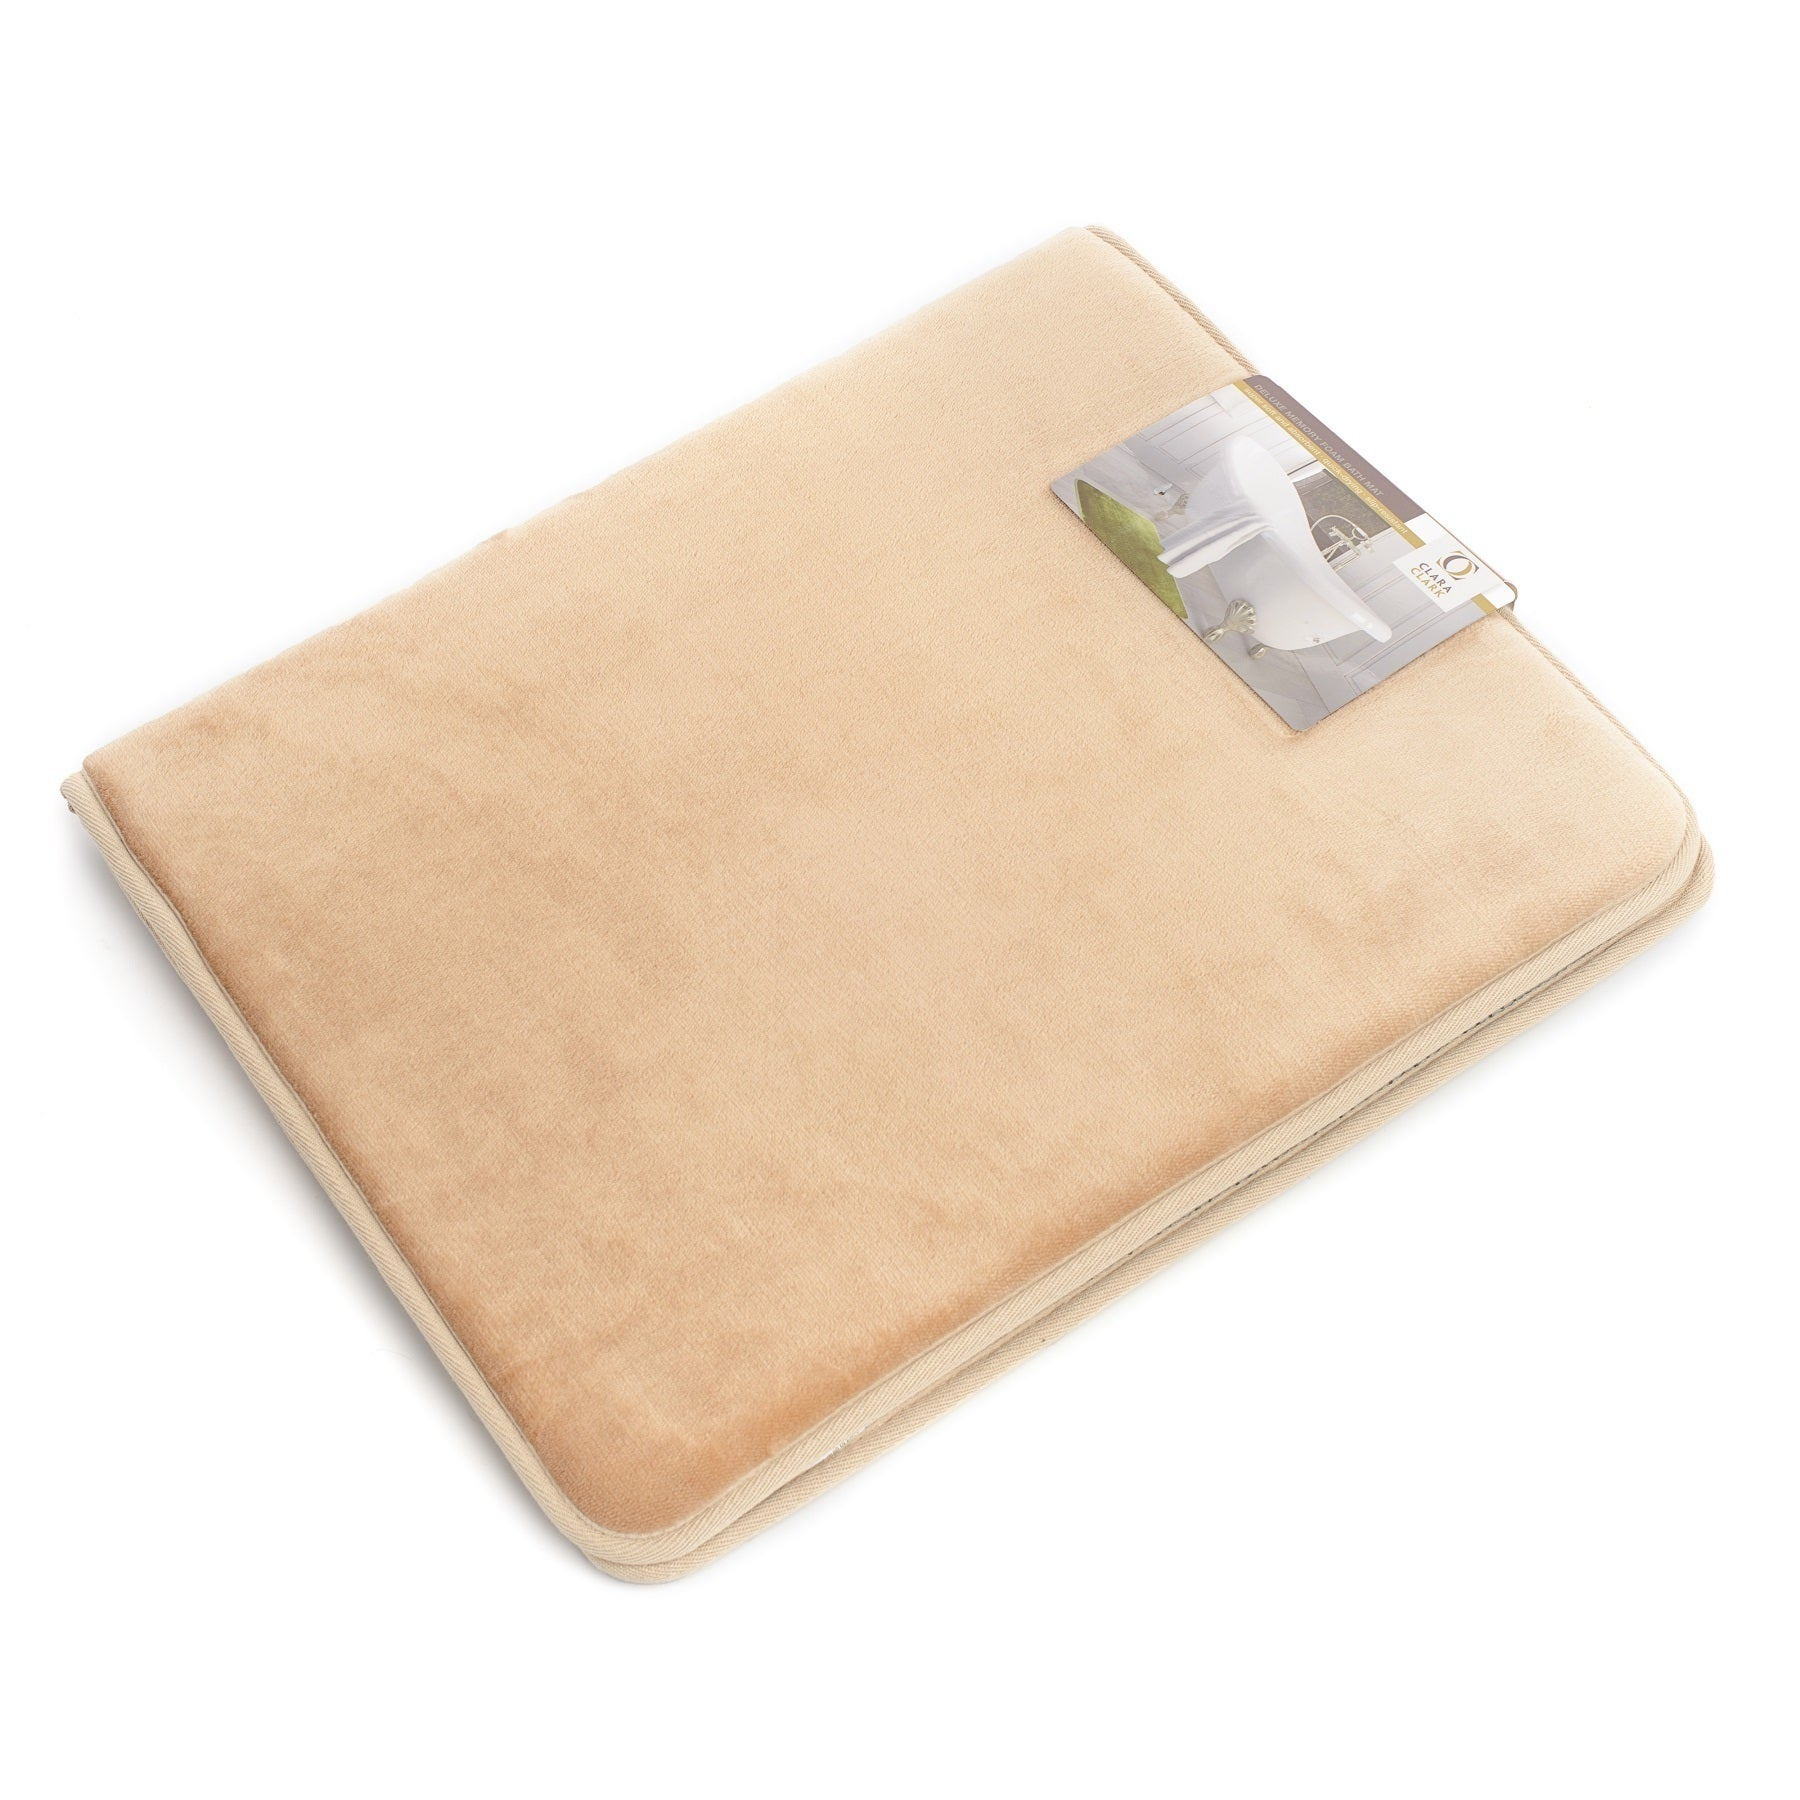 note and elvoki contour cover this set with for sets com lid brownstones comfort mat memory your round foam works rug index toilet bathroom piece